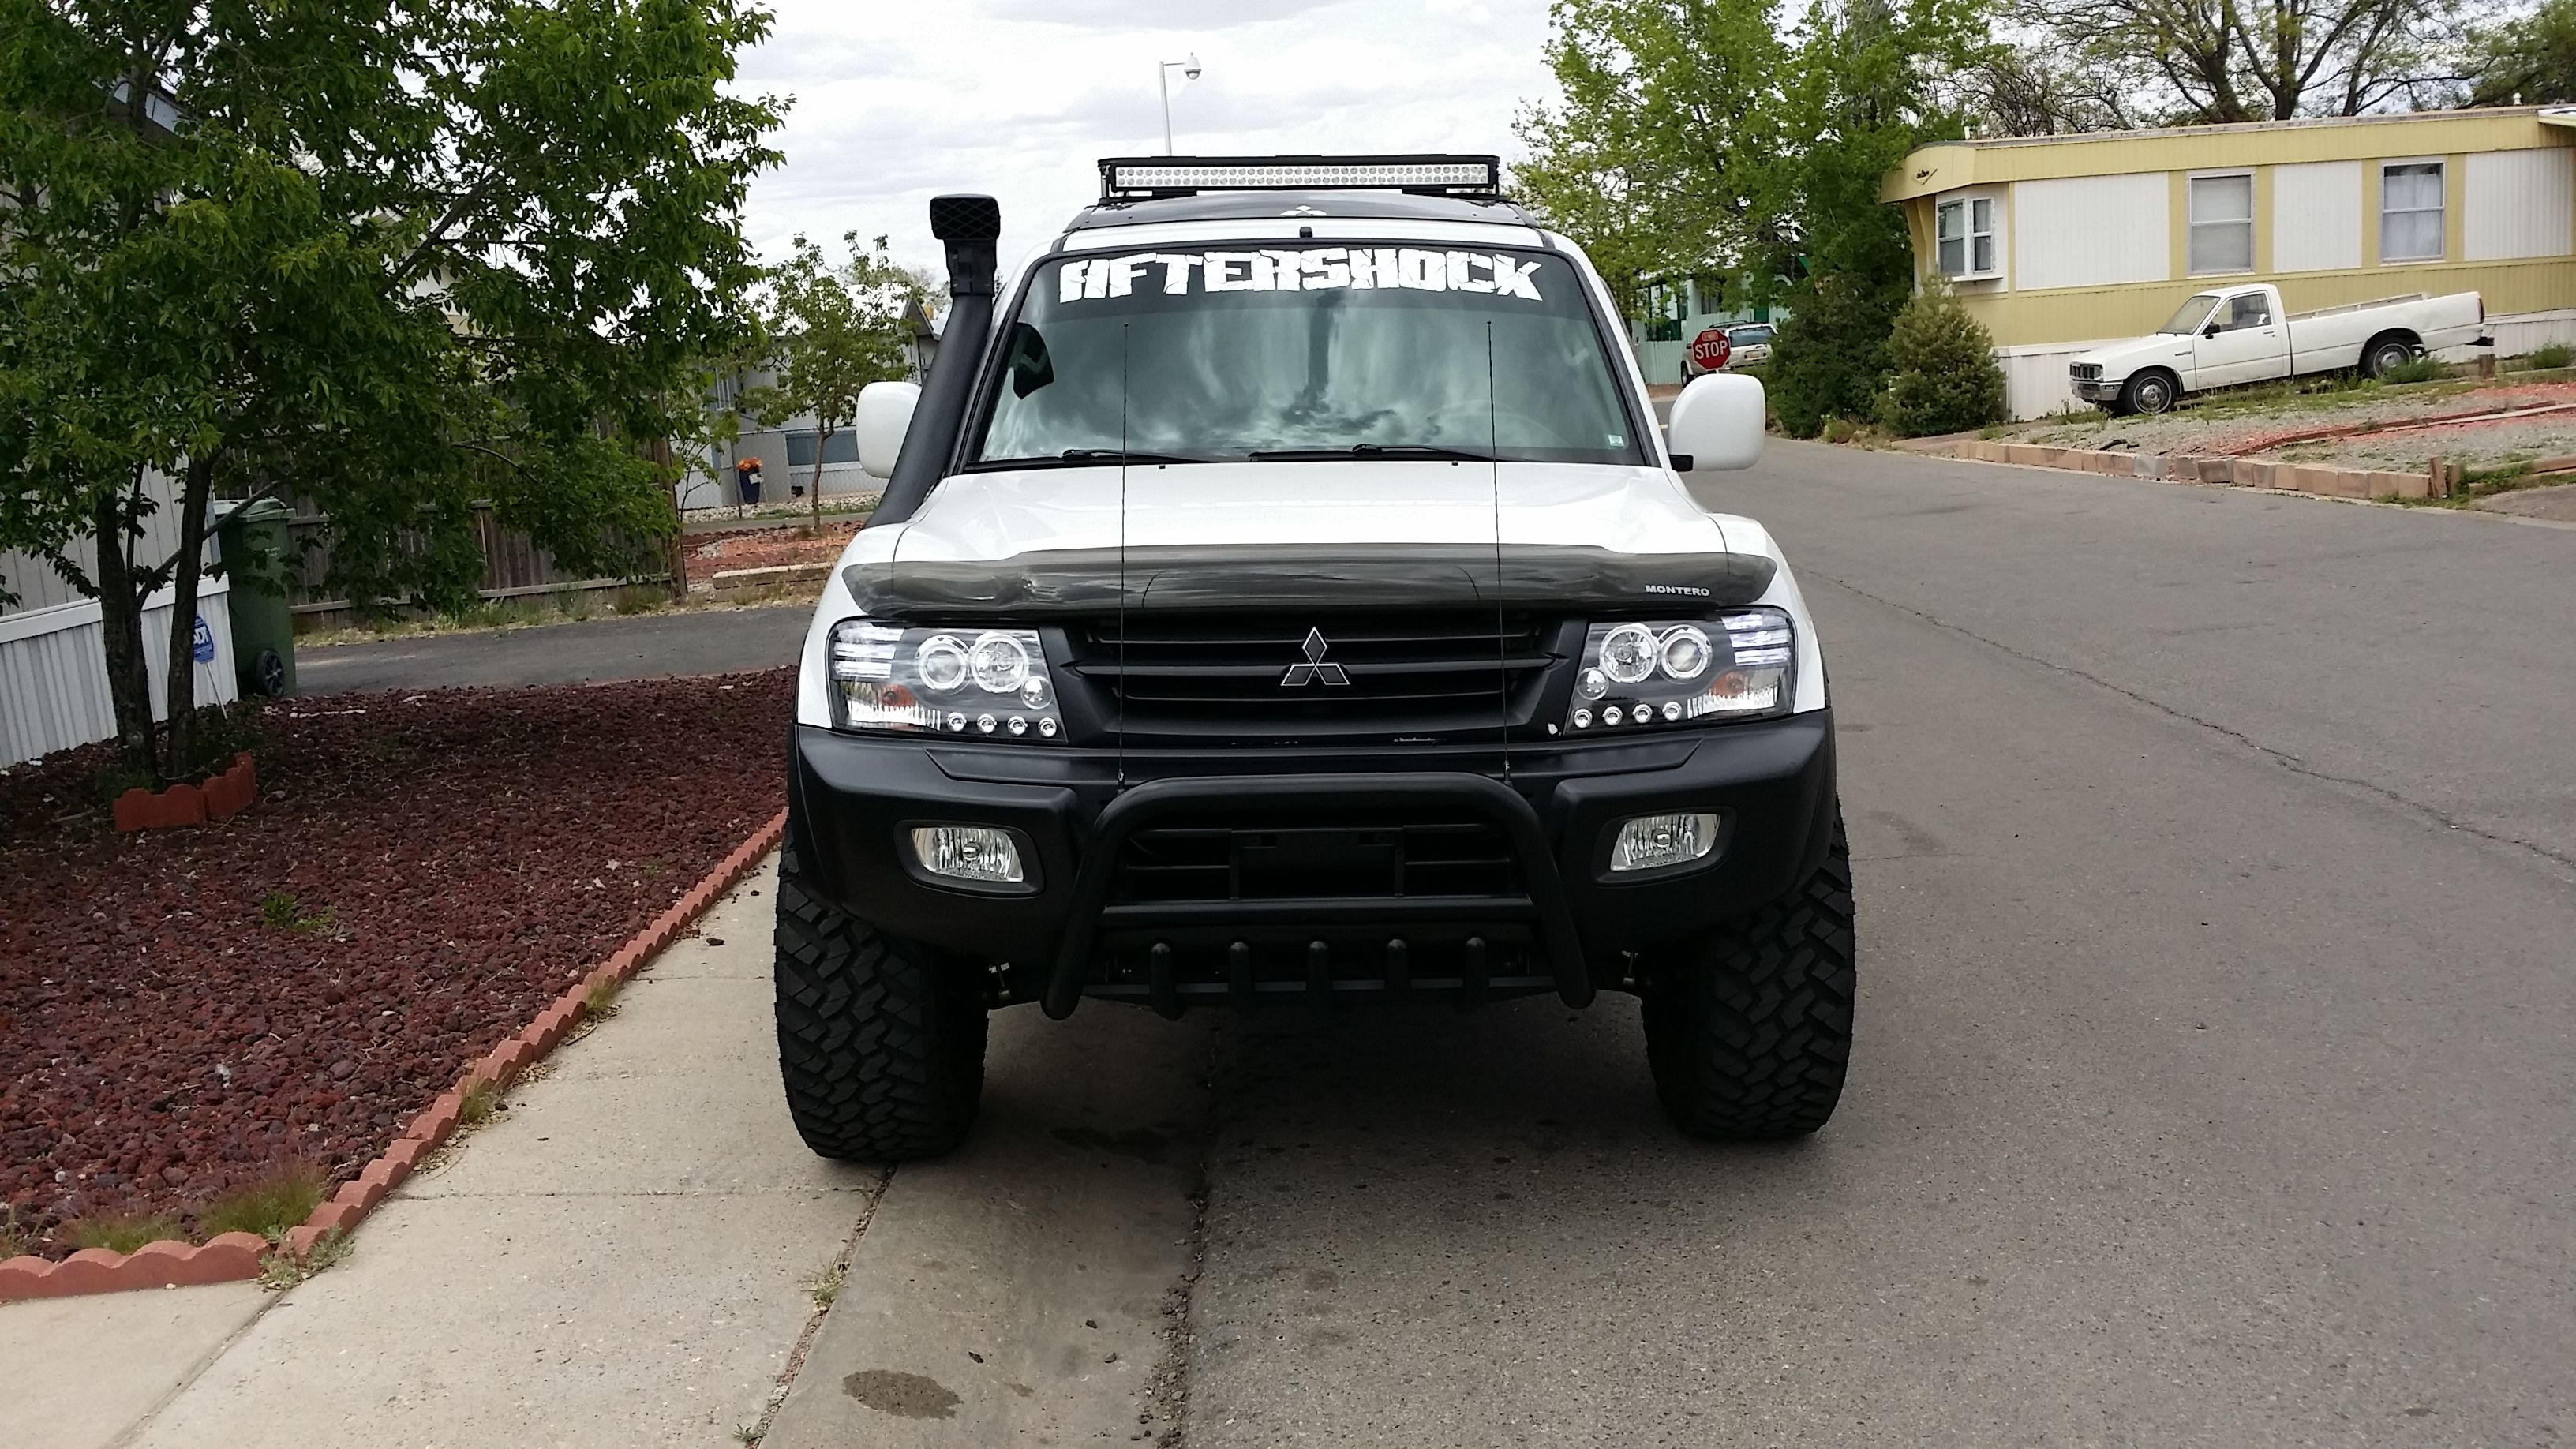 My Lifted 2002 Pajero Montero Limited 4x448841 By Aftershock2276